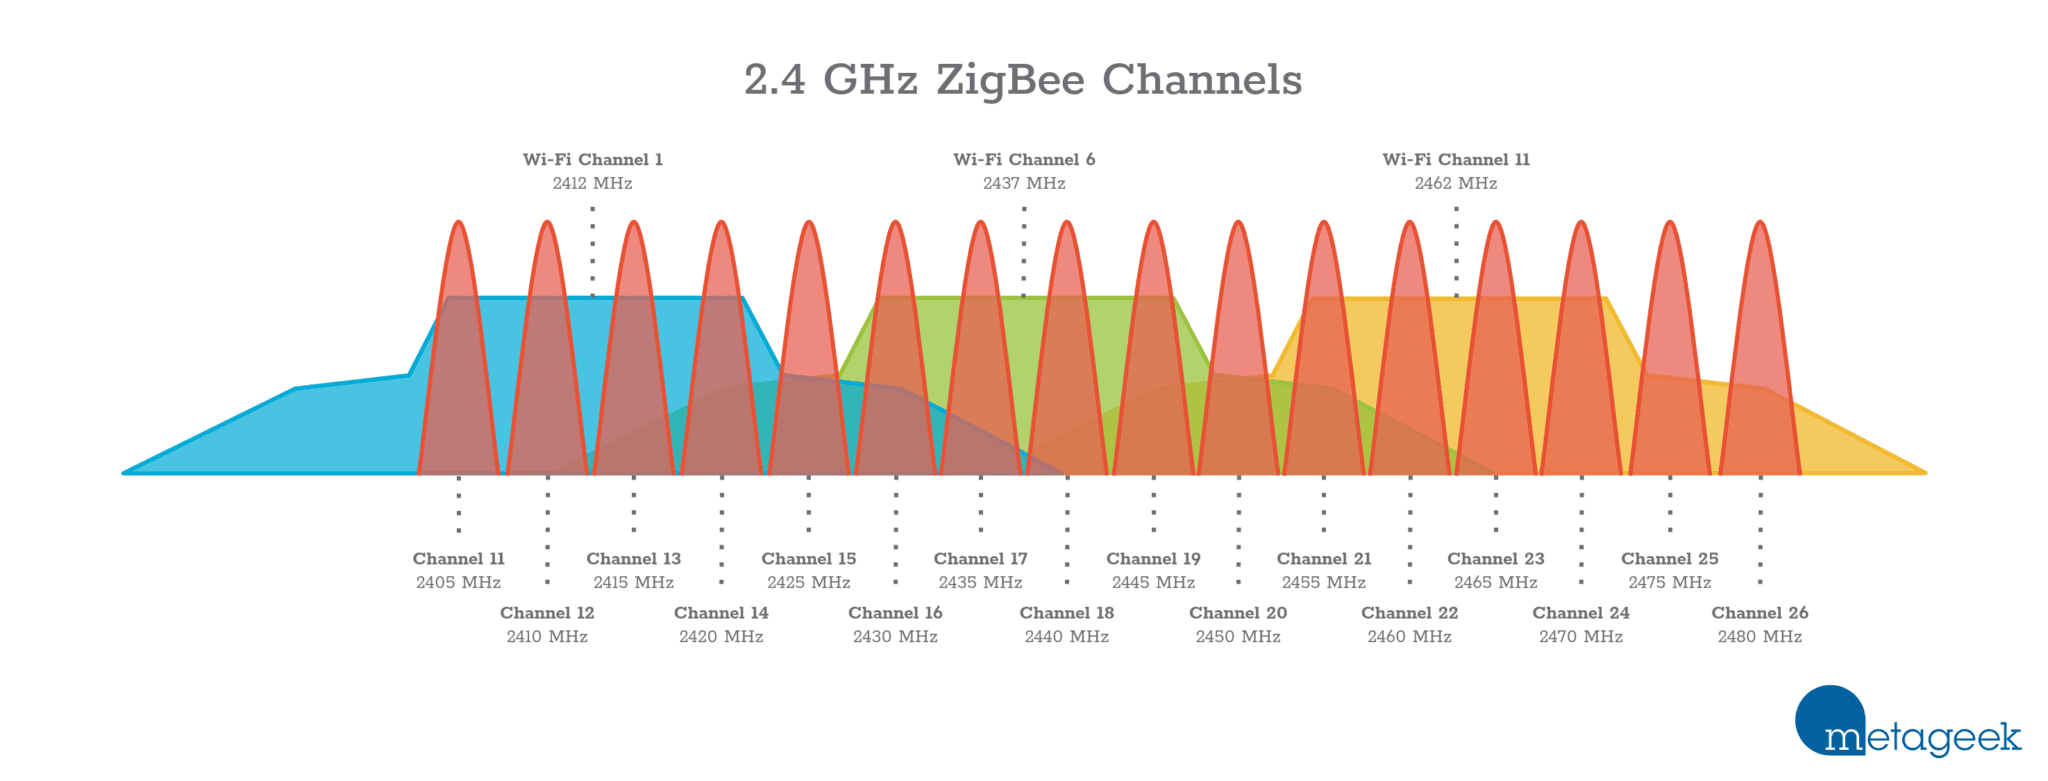 ZigBee and WiFi frequency channels